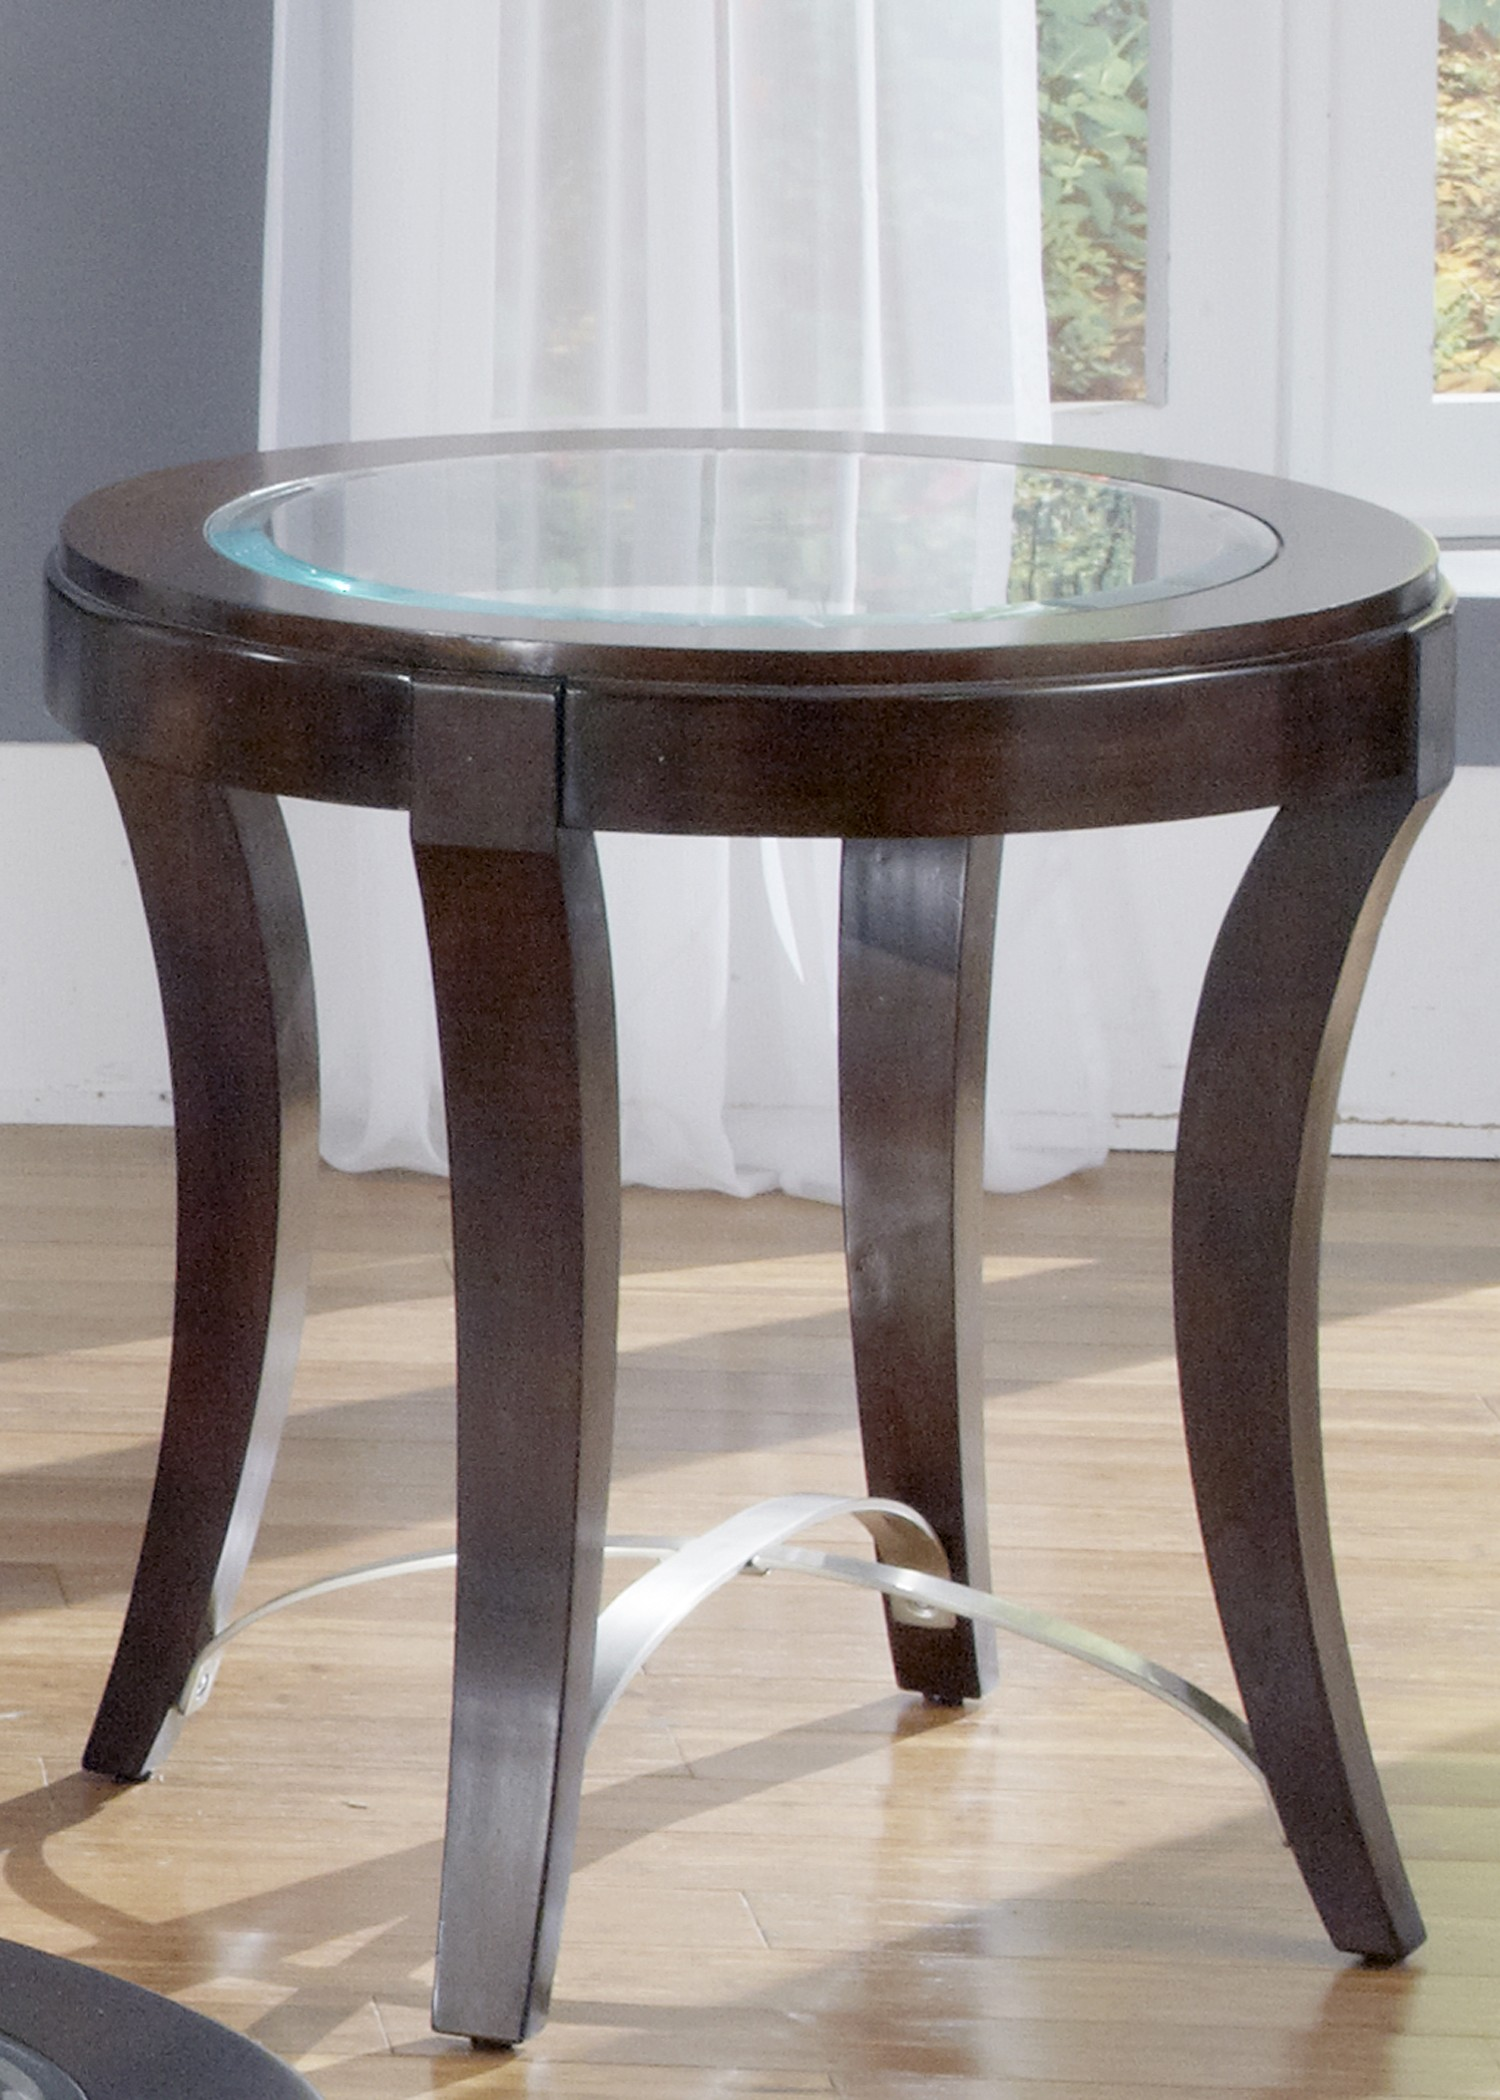 Avalon Oval End Table From Liberty 505 Ot2020 Coleman